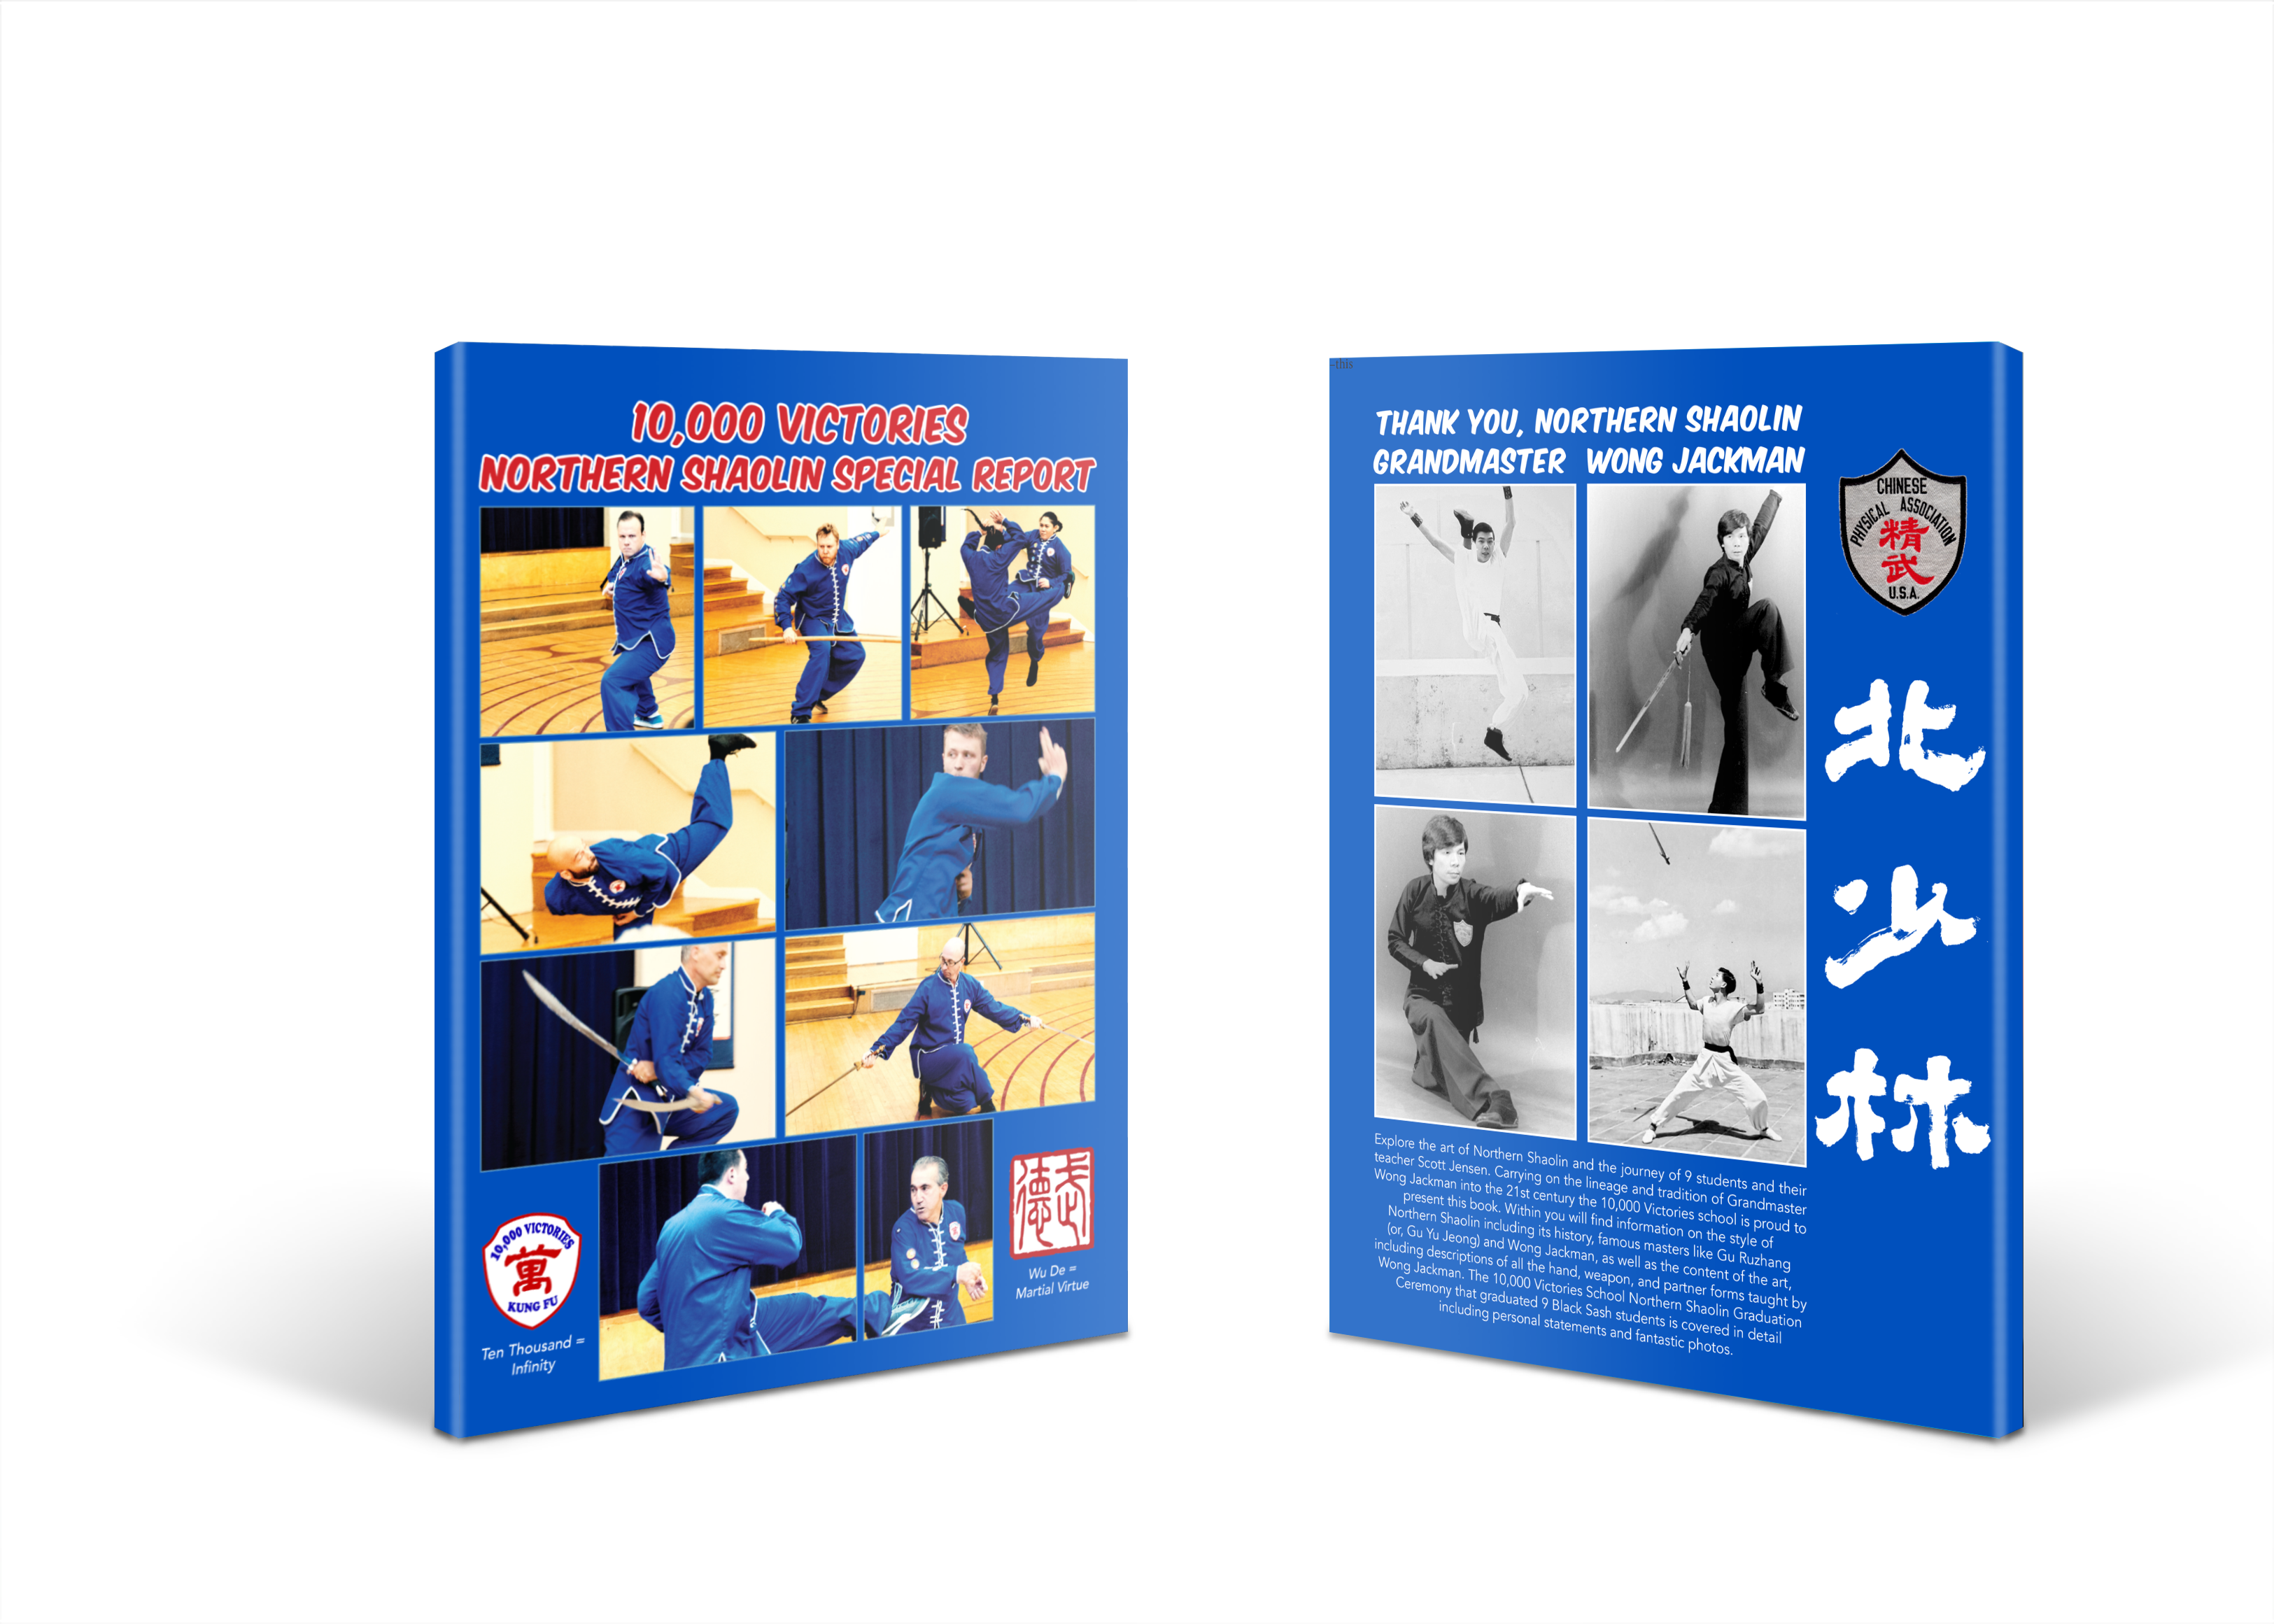 Northern Shaolin Special Report is Available Now!!